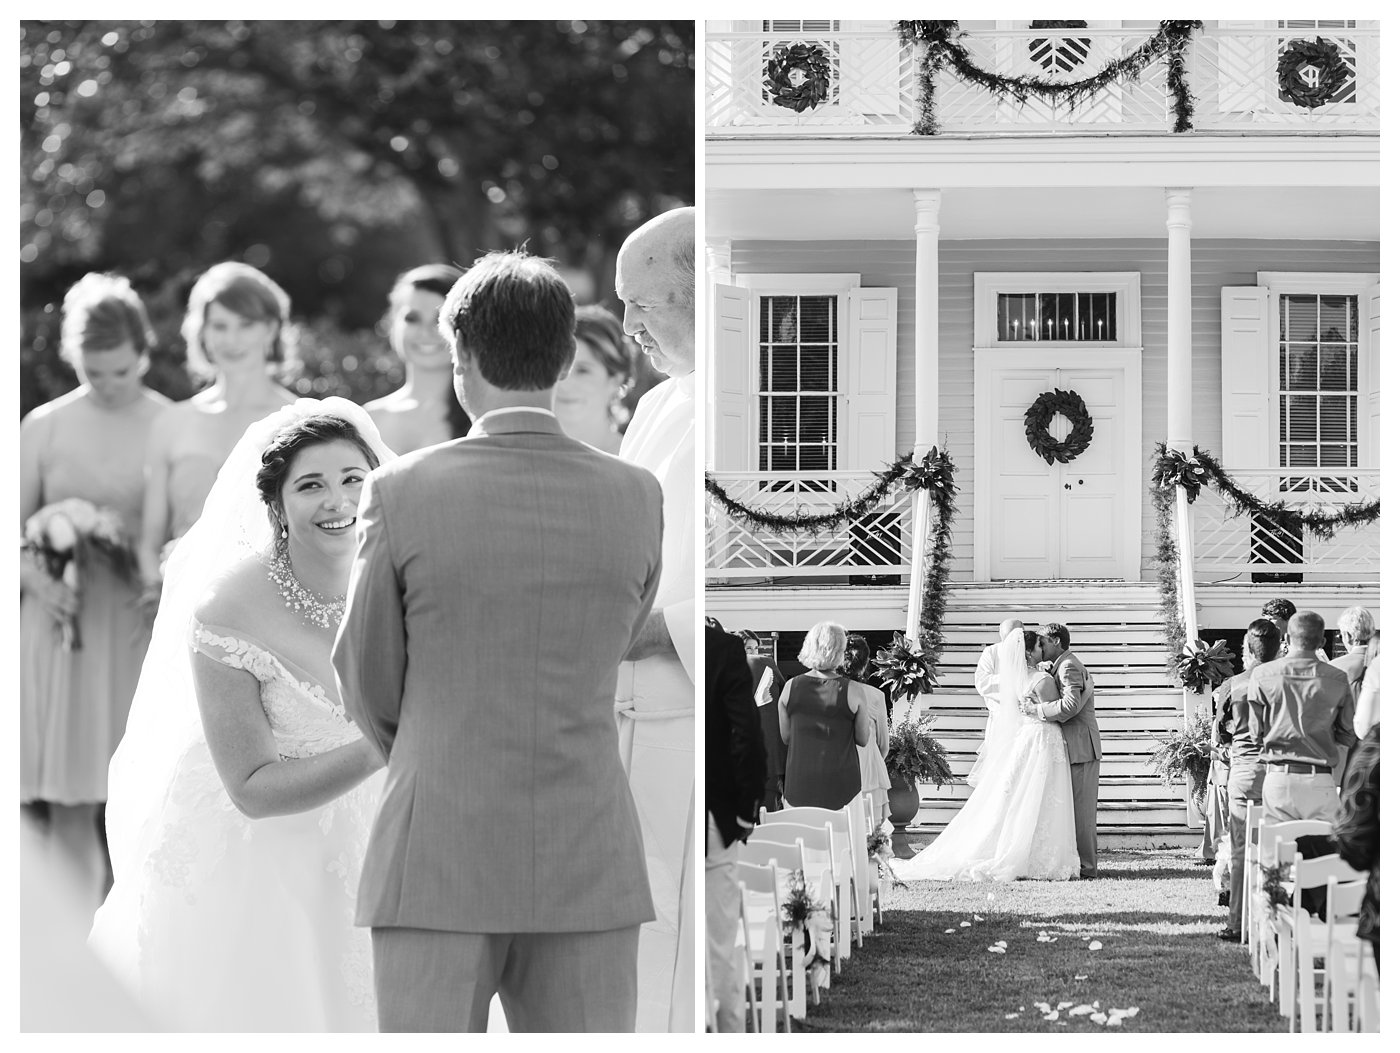 Historic_Hope_Plantation_Wedding_Photography_Sage_Summer_Outdoor_Windsor_NC_0031.jpg